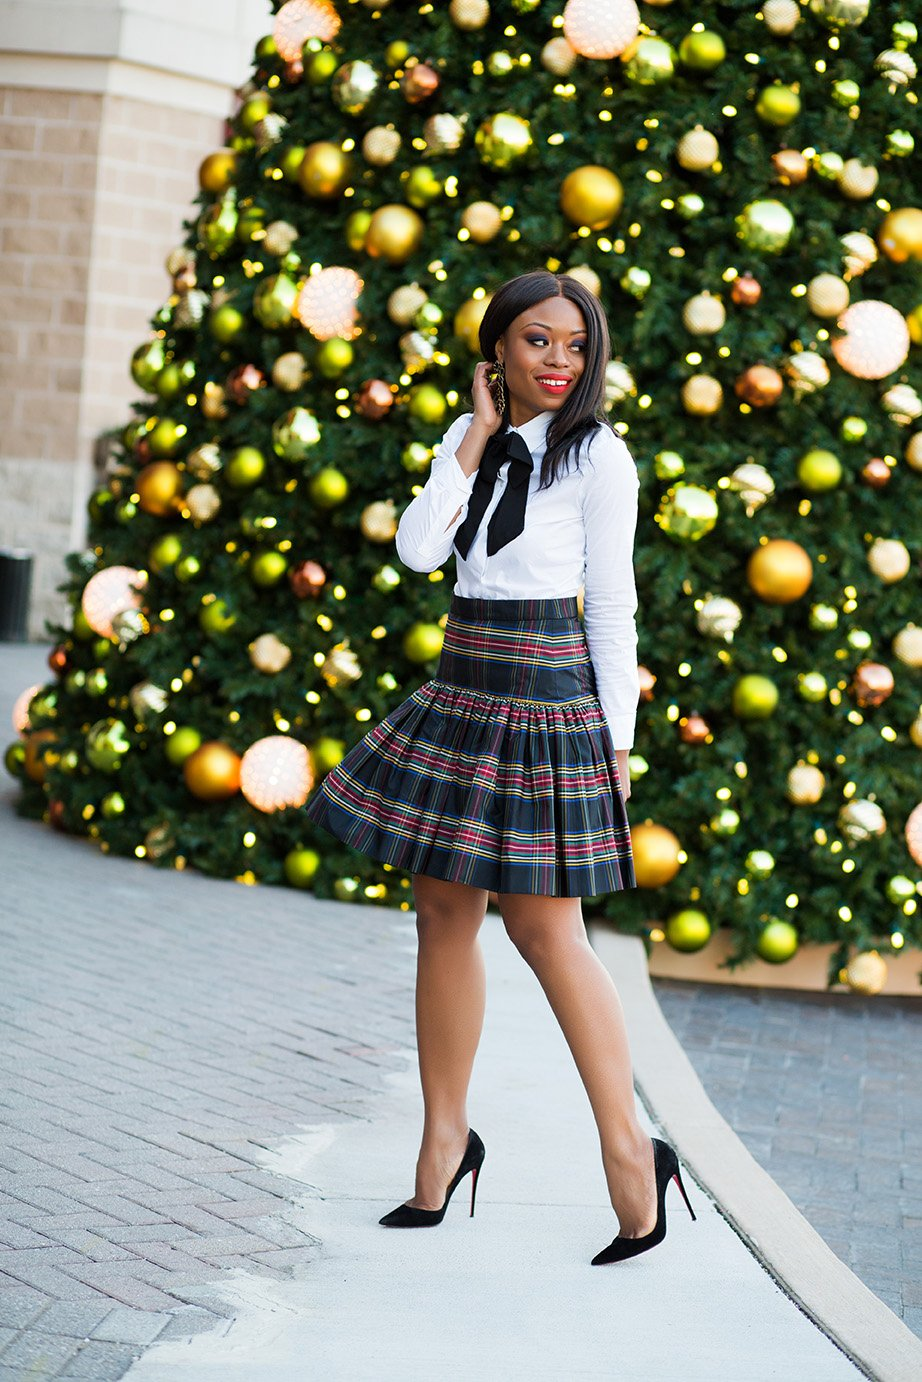 stella-adewunmi-in-jcrew-plaid-skirt-for-holiday-party